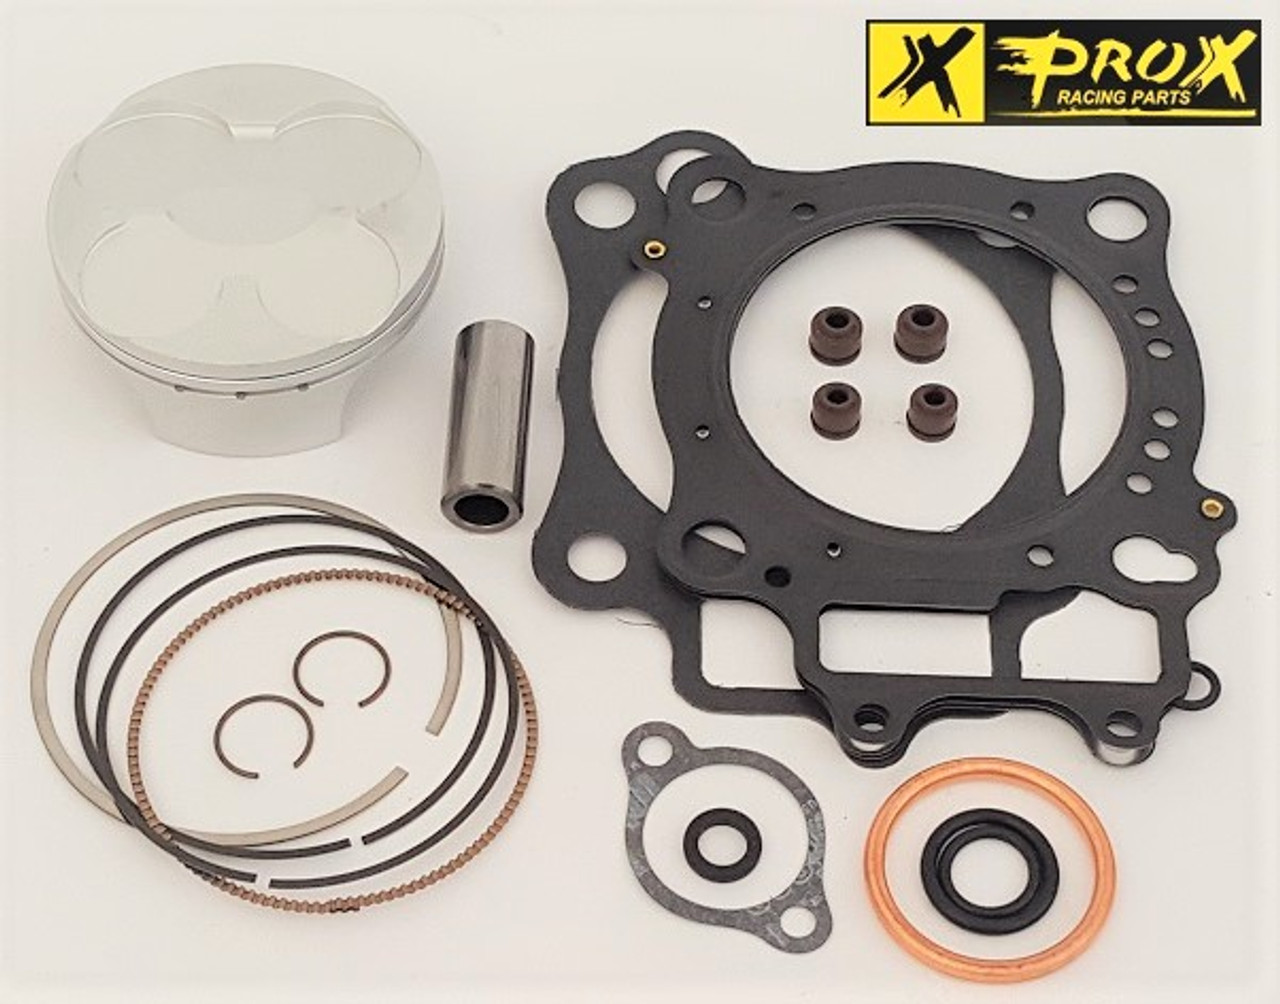 2008-2012 KTM 530 EXC-R Dirt Bike Vertex Piston Circlip